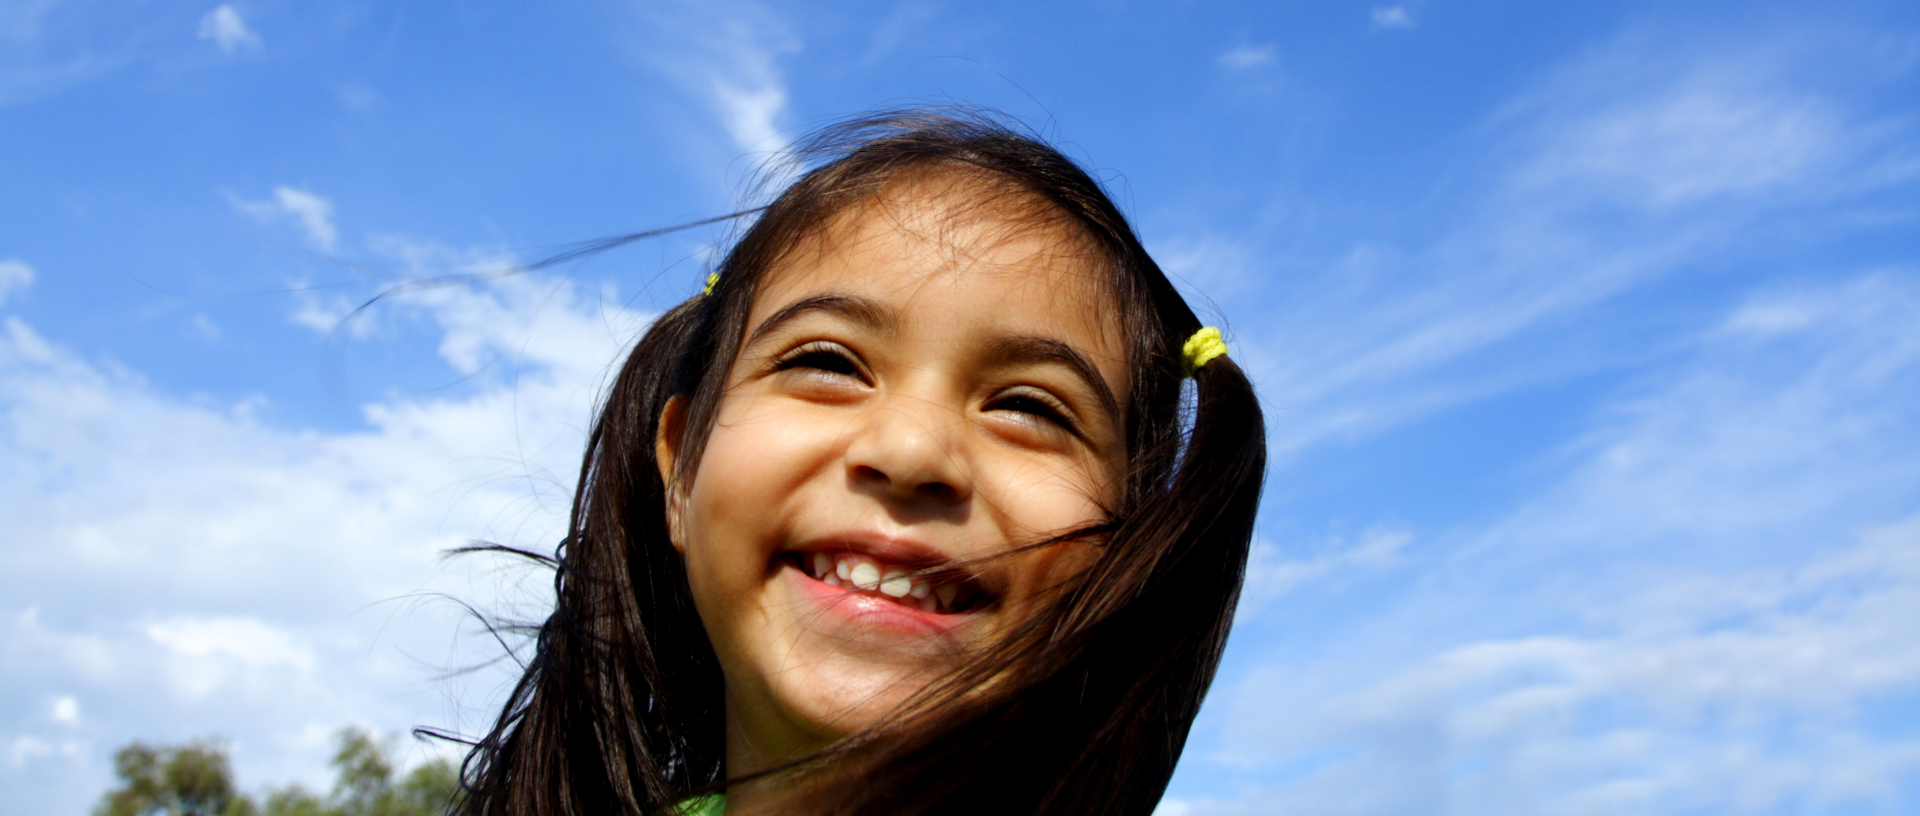 Girl Smiling while outside at the park with blue sky background